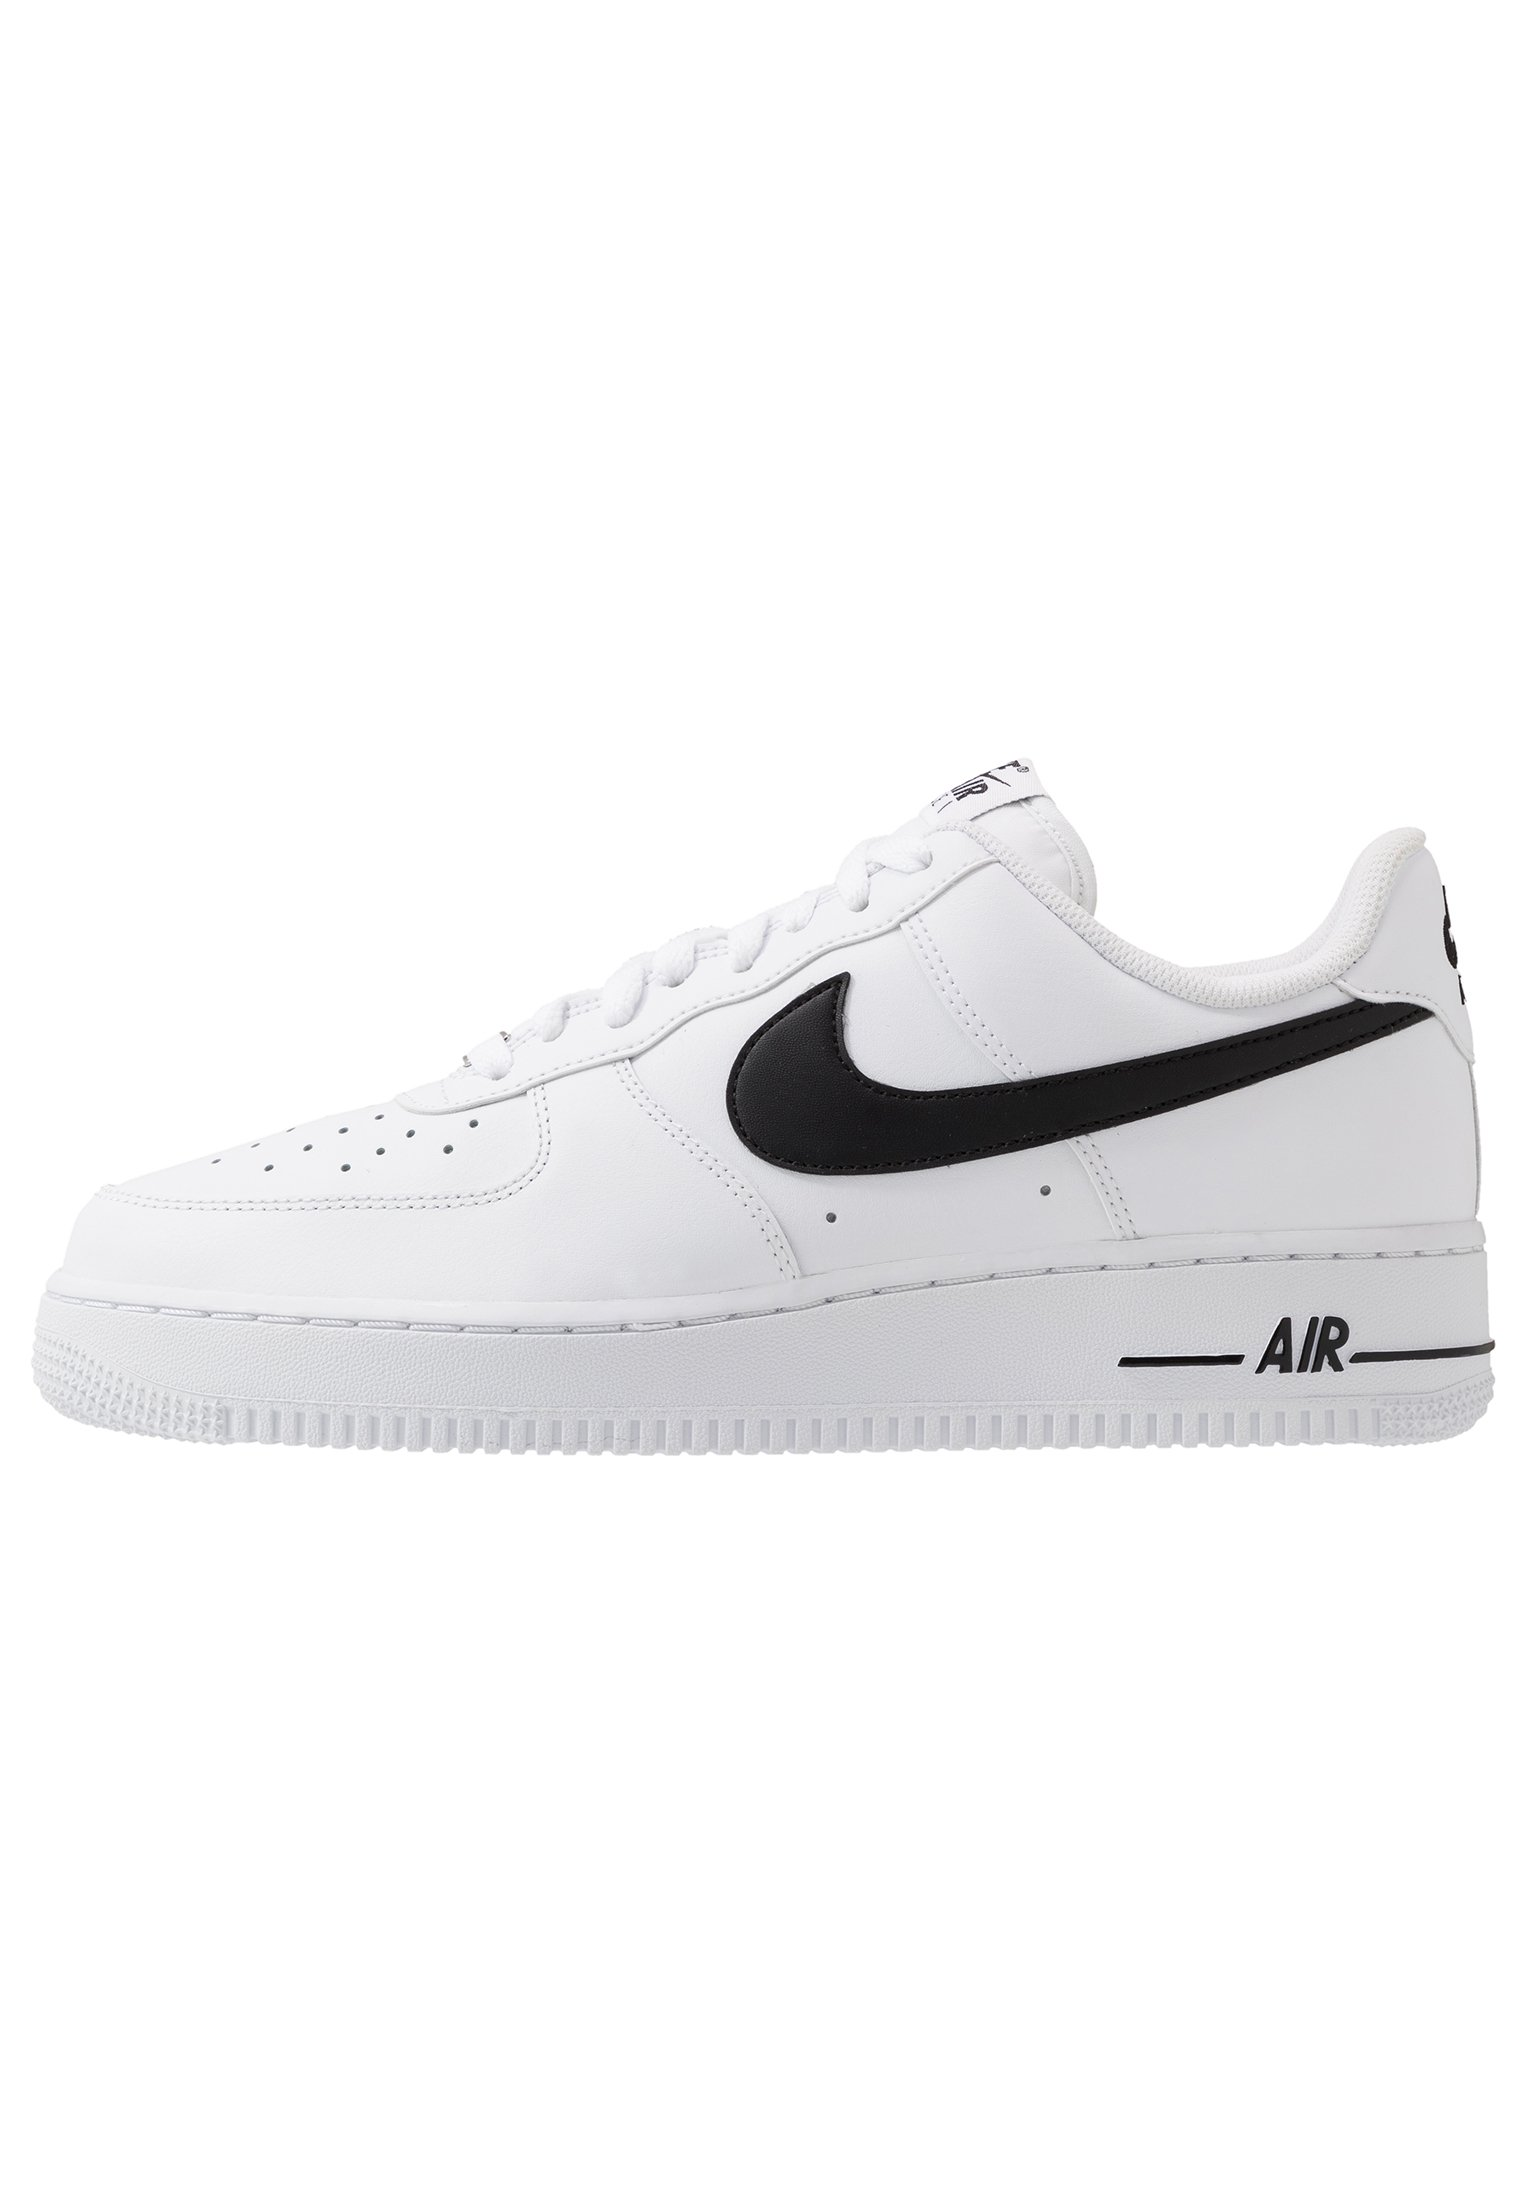 AIR FORCE 1 '07 AN20 Sneaker low whiteblack